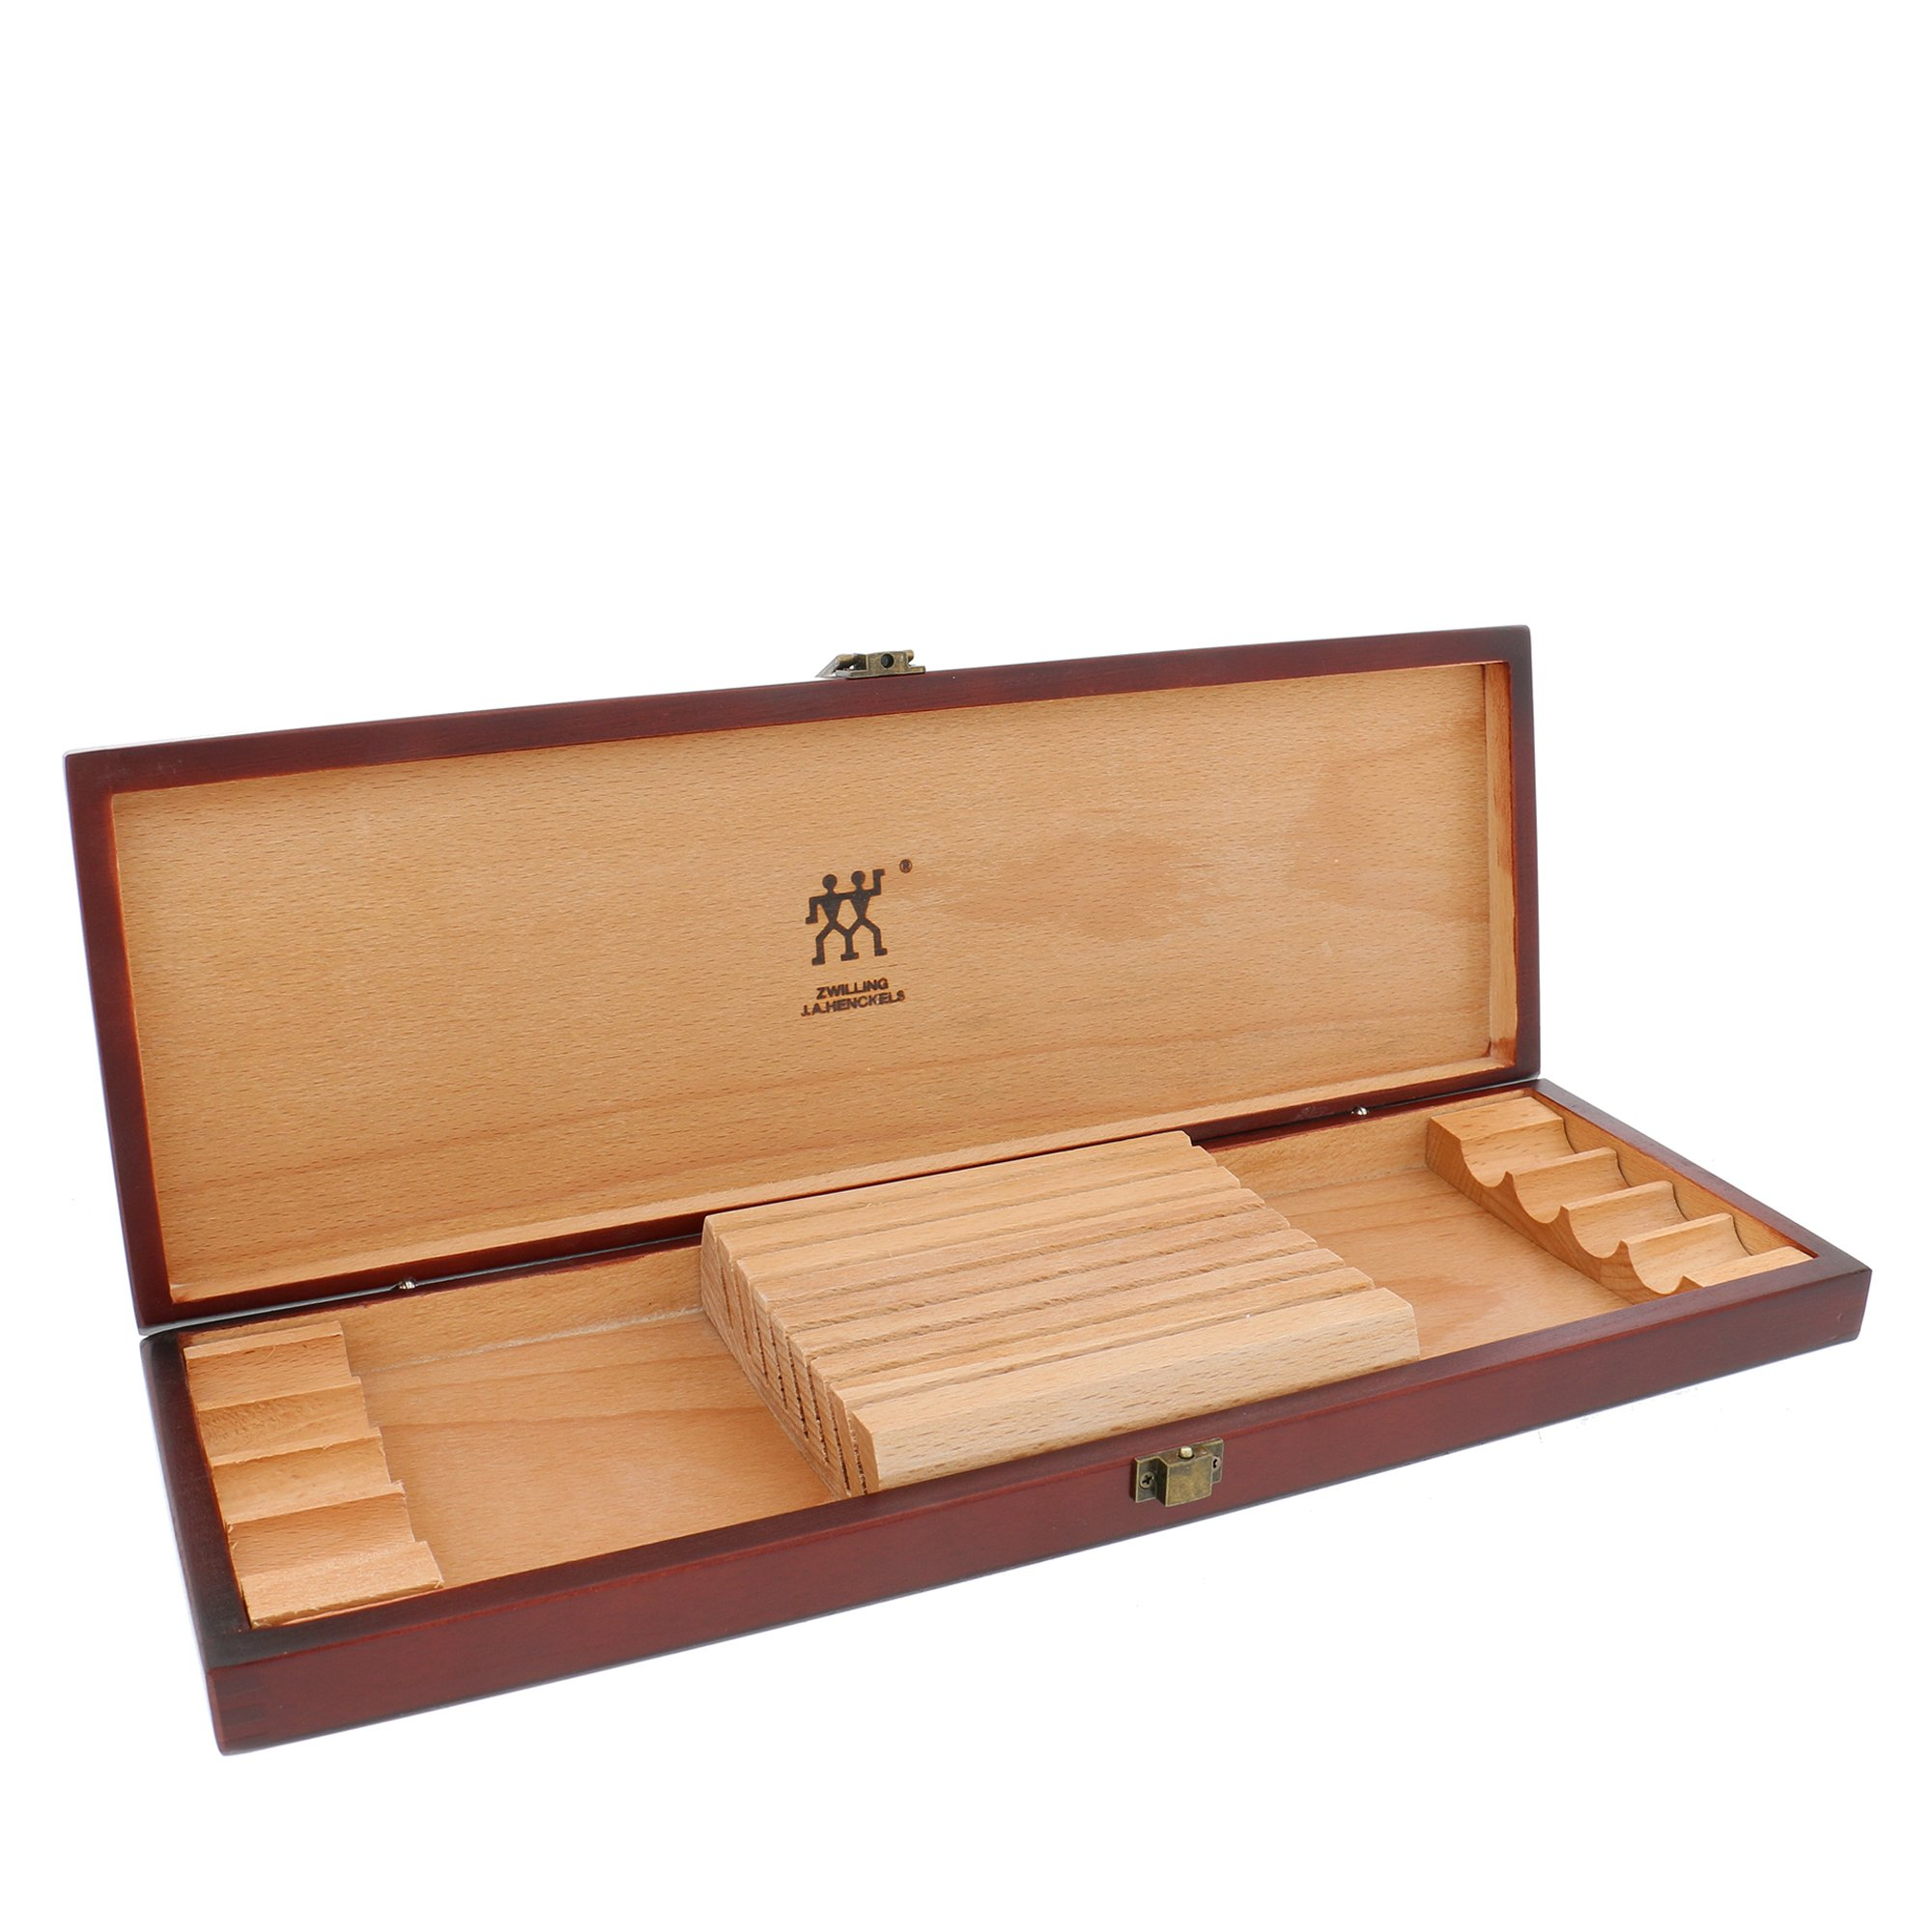 Zwilling J.A. Henckels Twin Gourmet 8-Piece Steak Knife Set with Box by ZWILLING J.A. Henckels (Image #3)